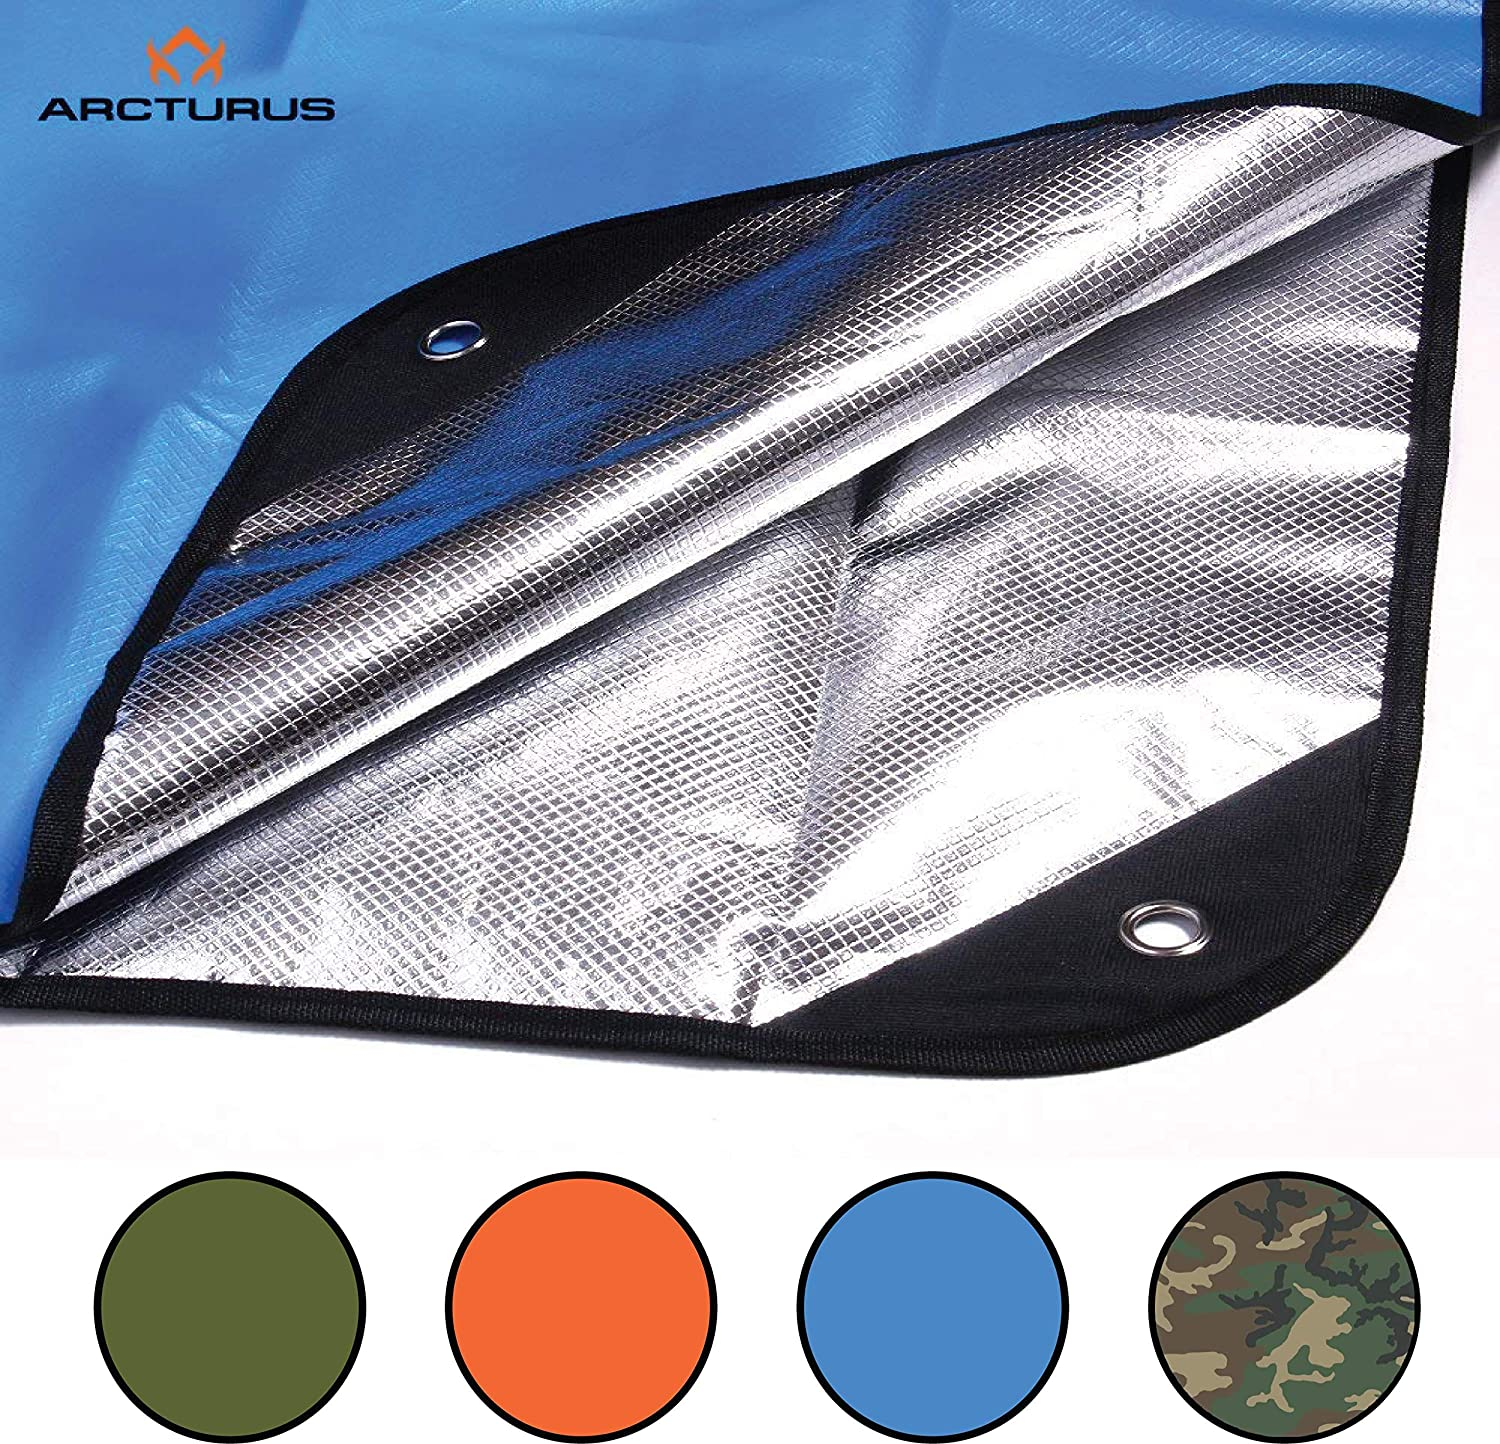 """Arcturus Heavy Duty Survival Blanket – Insulated Thermal Reflective Tarp - 60"""" x 82"""". All-Weather, Reusable Emergency Blanket for Car or Camping (Blue)"""